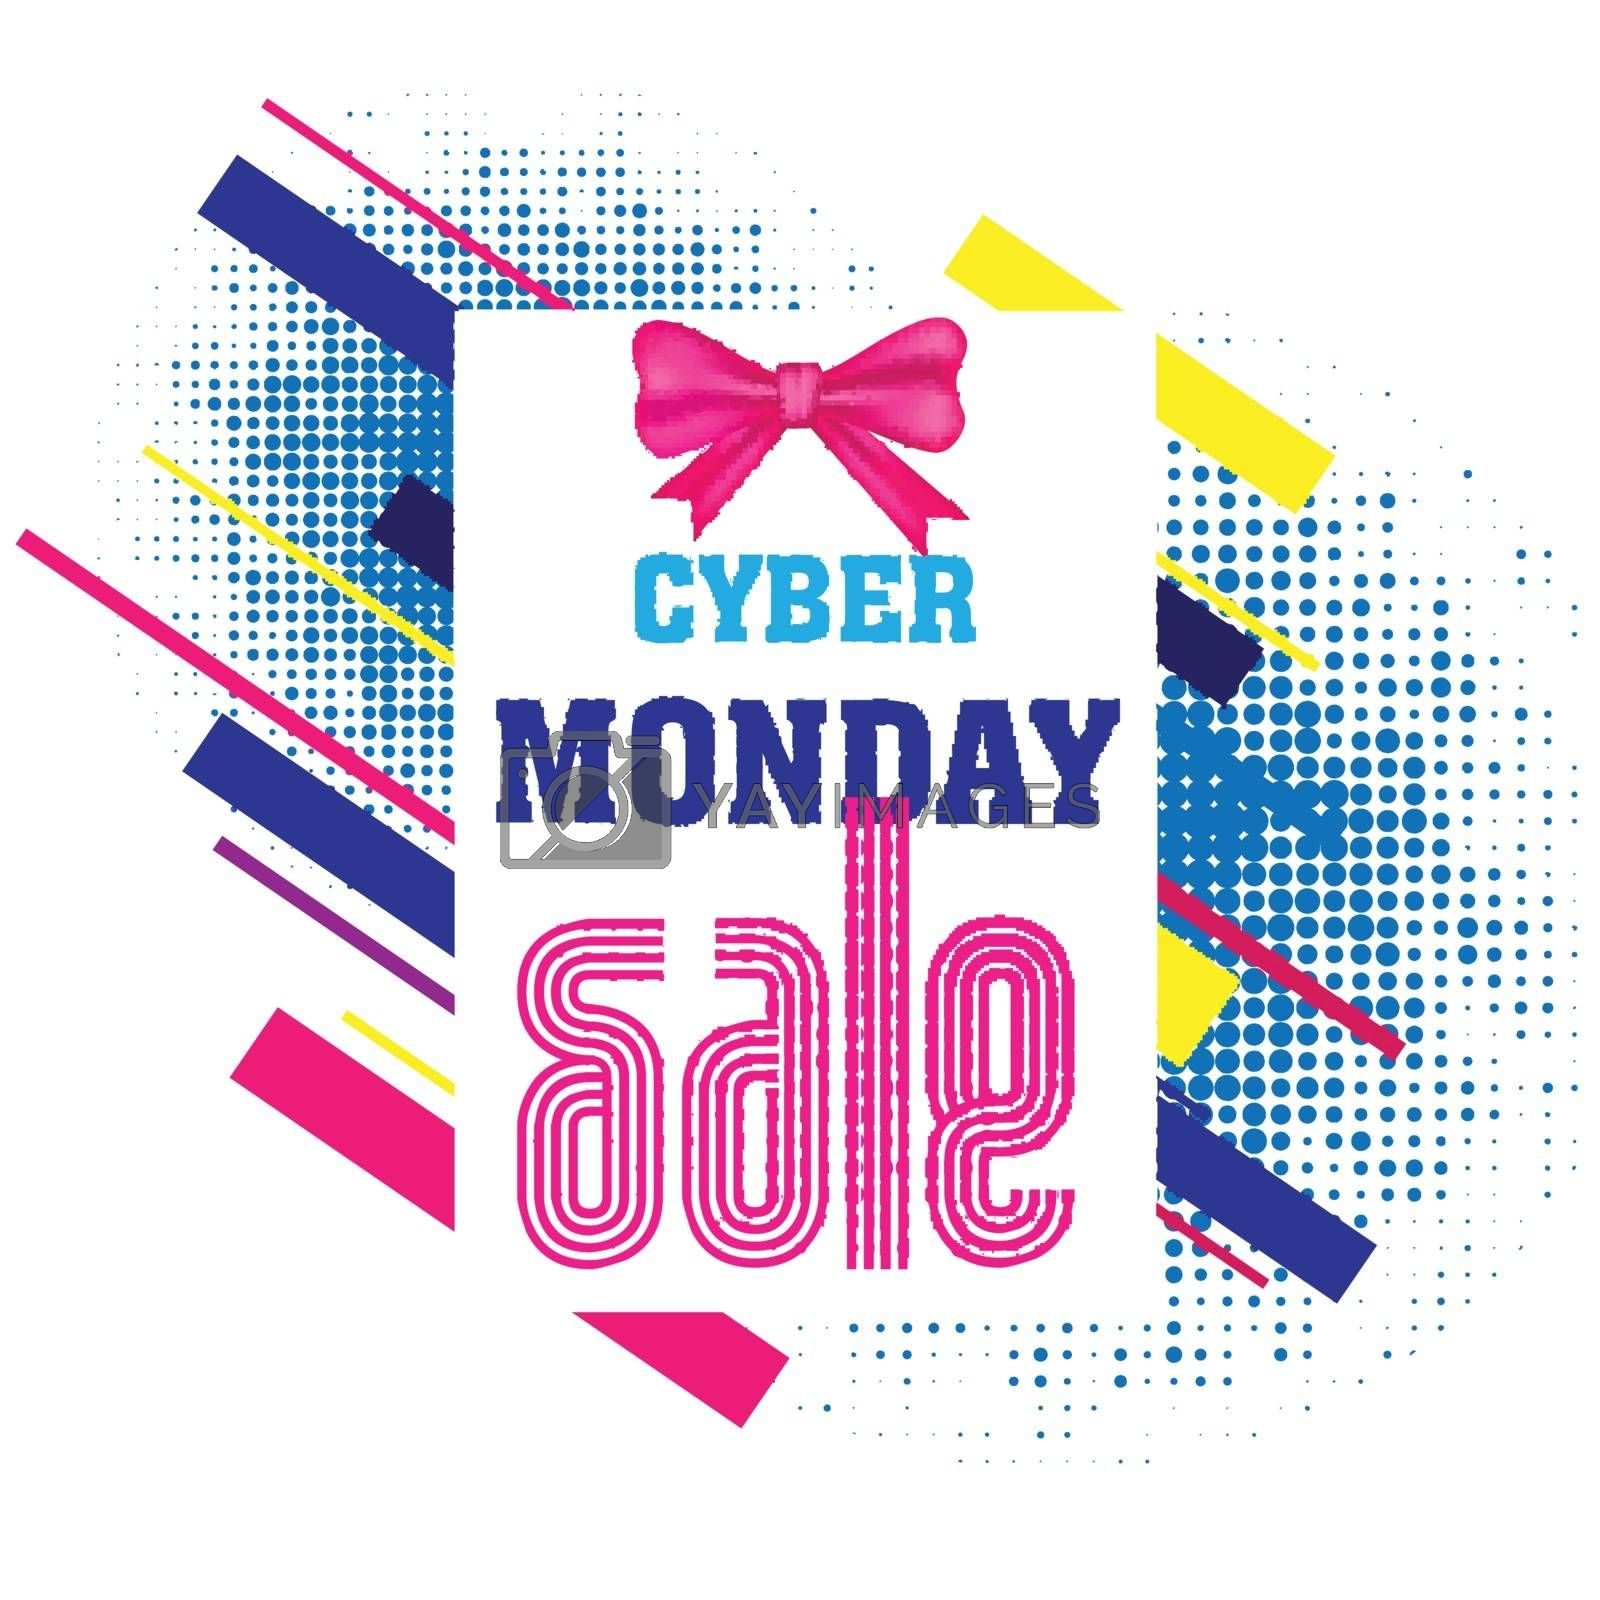 Template or flyer design with creative text Cyber Monday Sale an by aispl